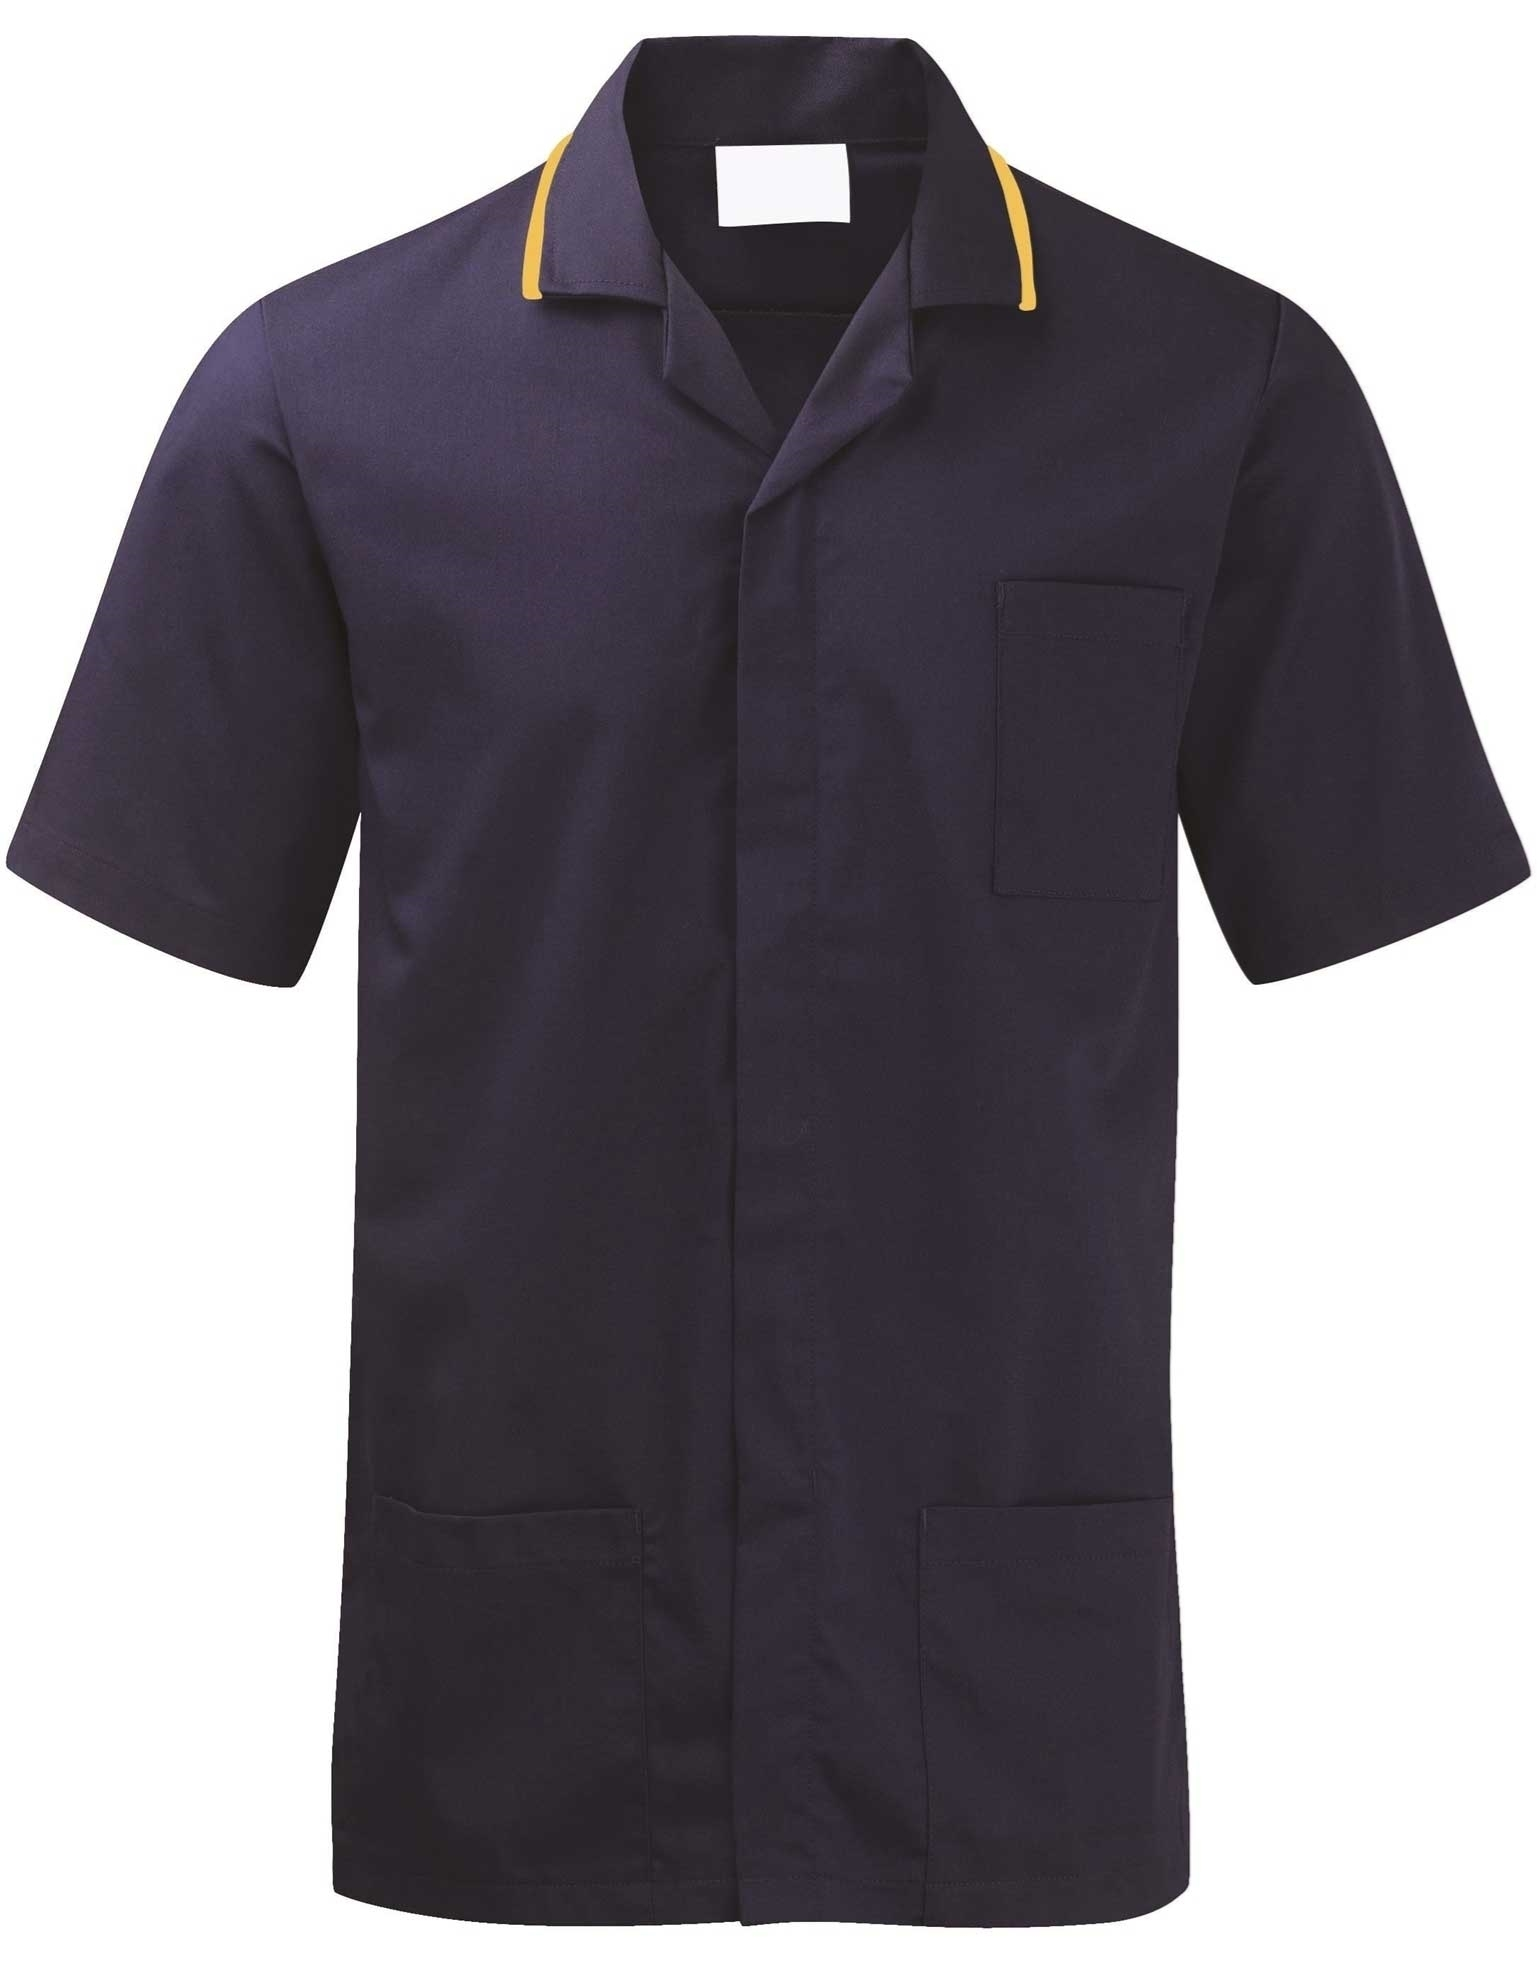 Picture of Advantage Front Fastening Tunic - Navy/Yellow